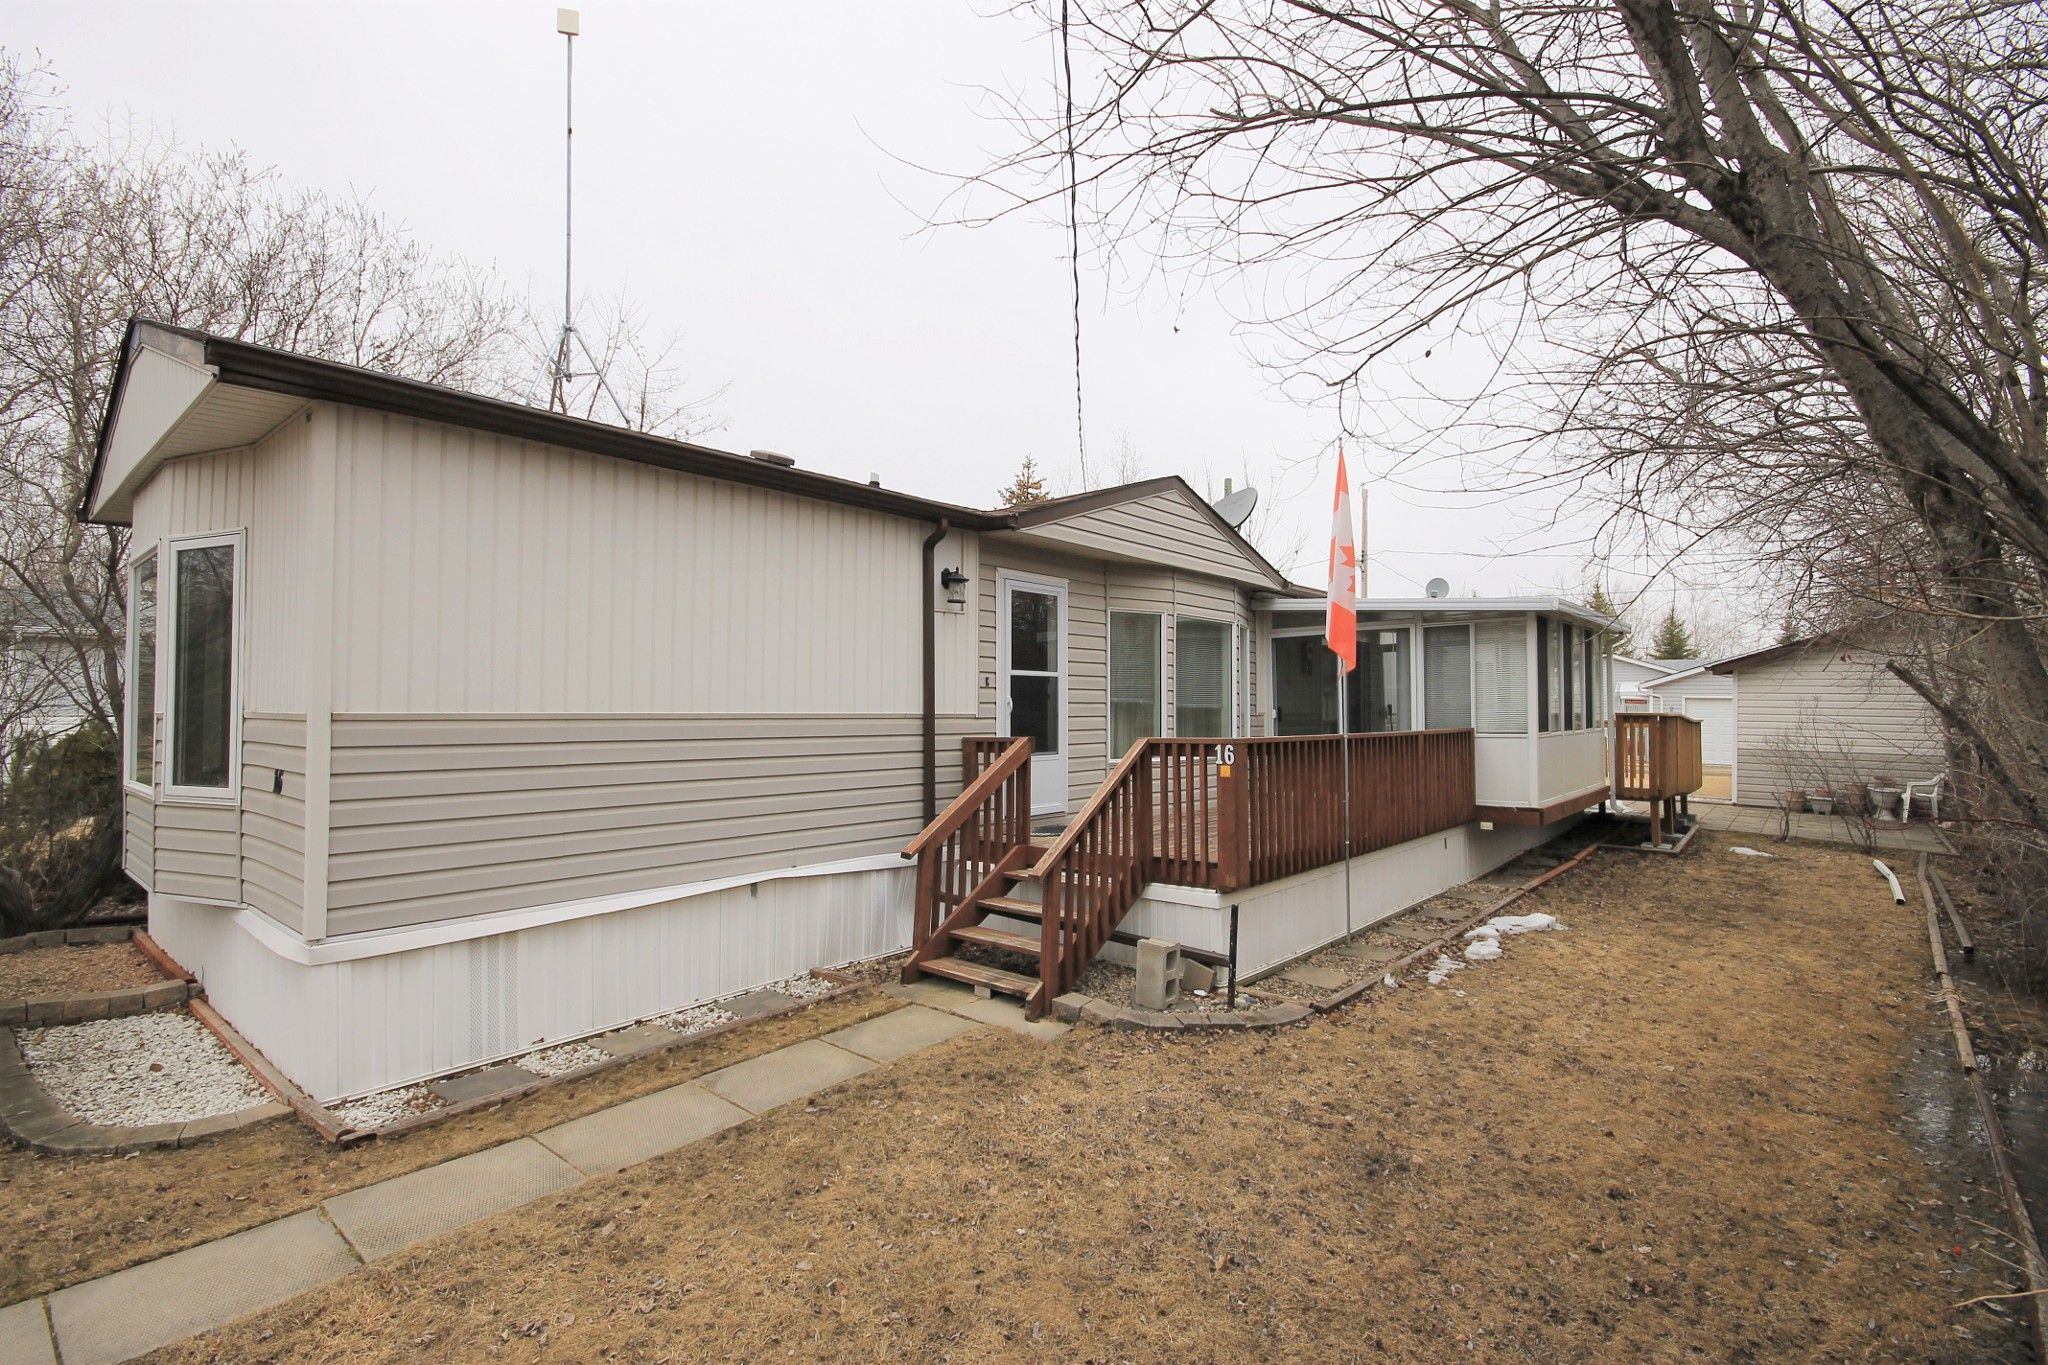 Main Photo: 16 Sunset Drive in Ste Anne Rm: Paradise Village Residential for sale (R06)  : MLS®# 202008547